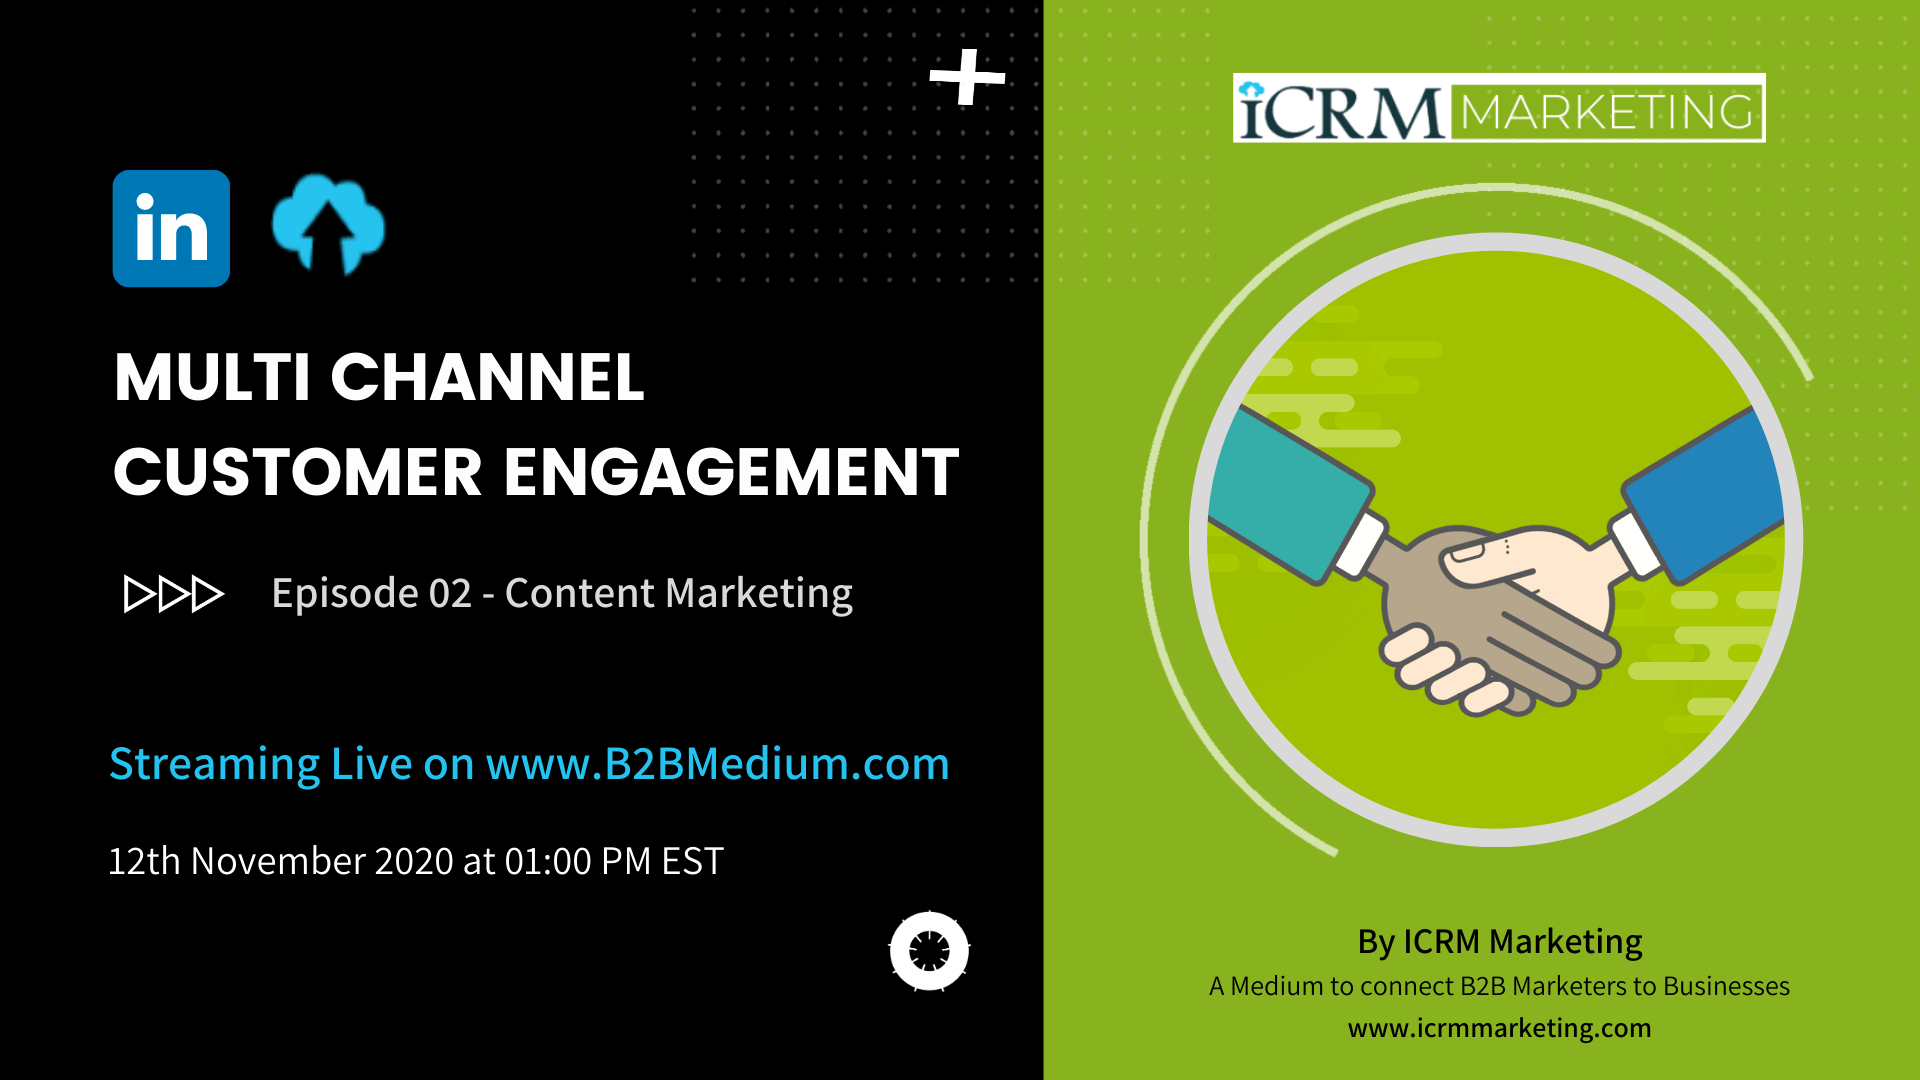 Multi-channel customer enagement - (Episode 02 - Content Marketing)